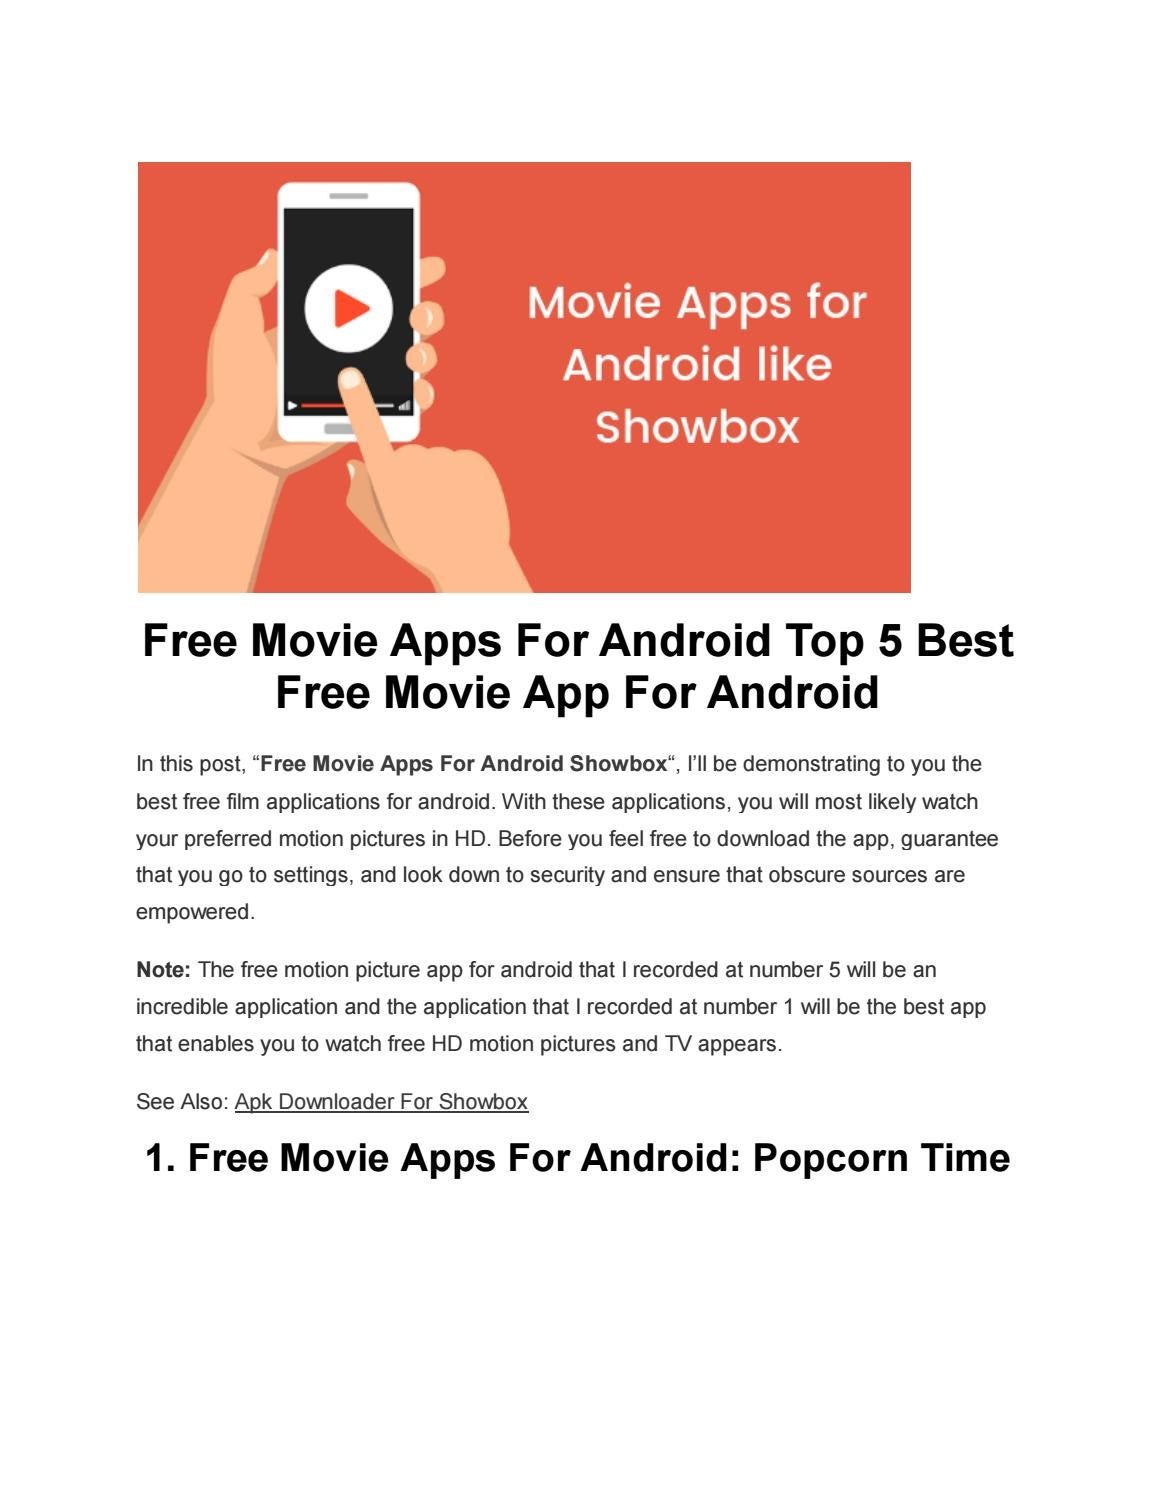 Free Movie Apps For Android Top 5 Best Free Movie App For Android By Apk Downloading Issuu